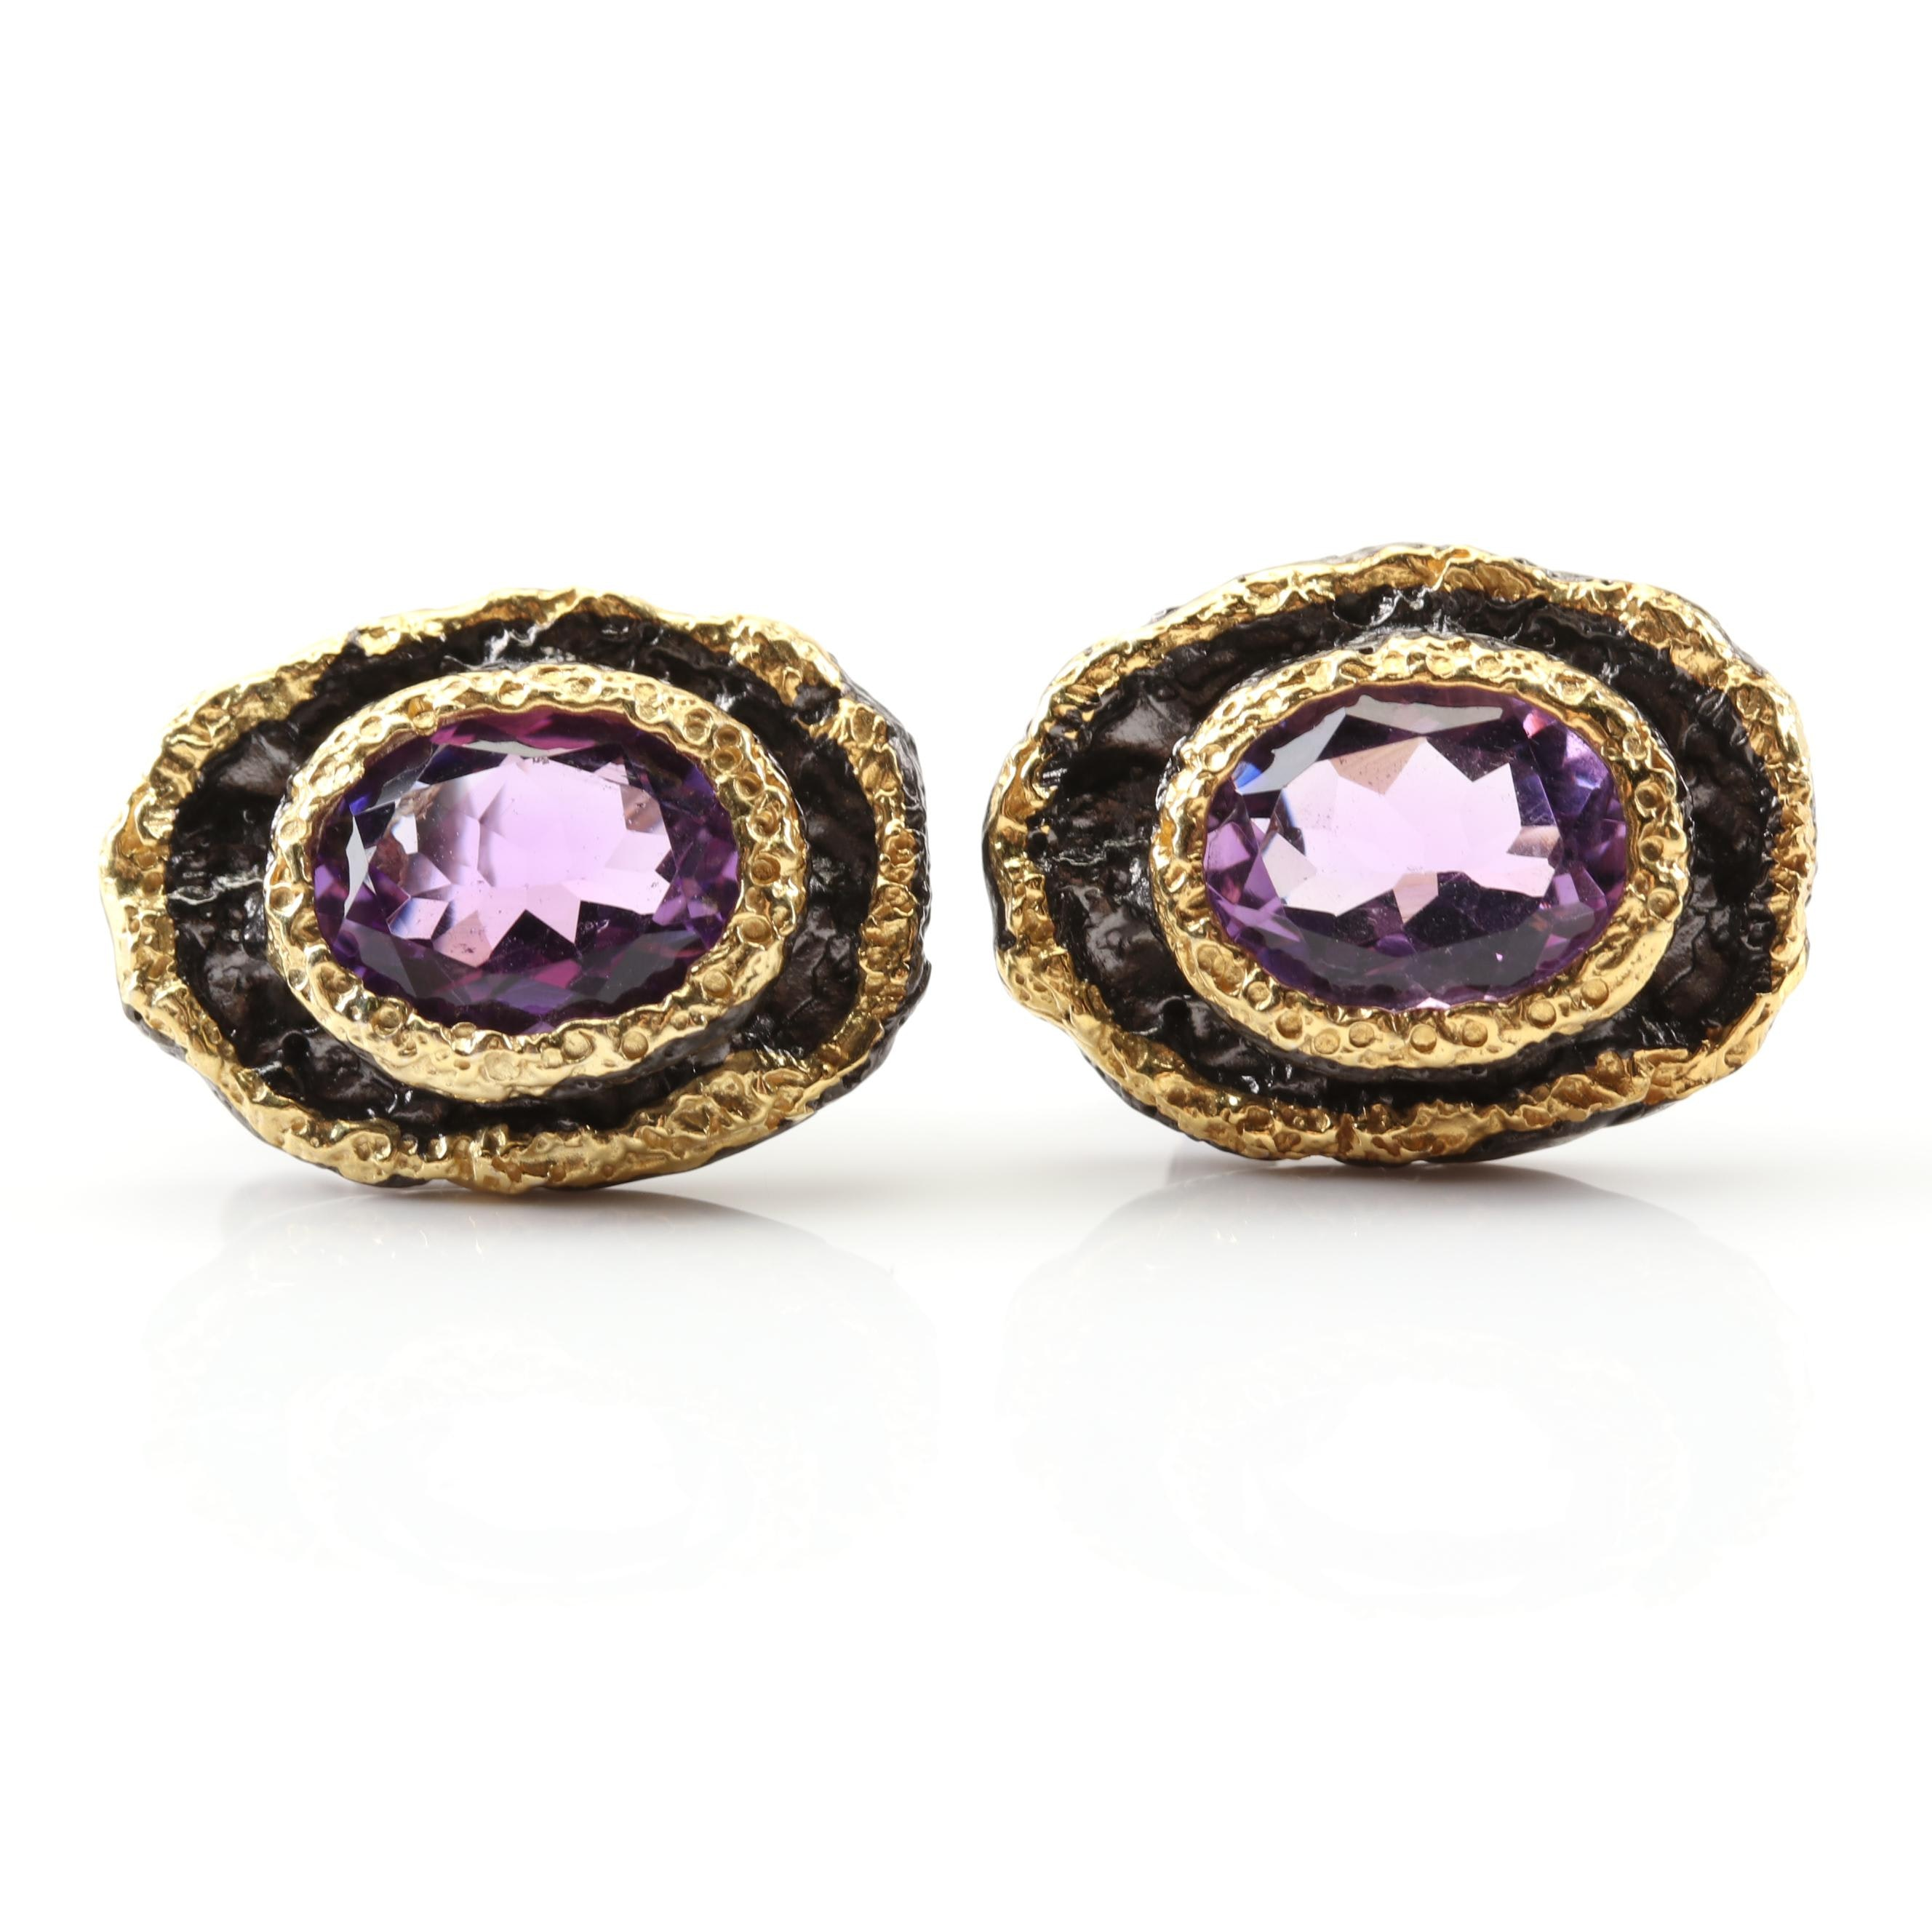 Sterling Silver 3.30 CTW Amethyst Earrings with Gold Wash Accents